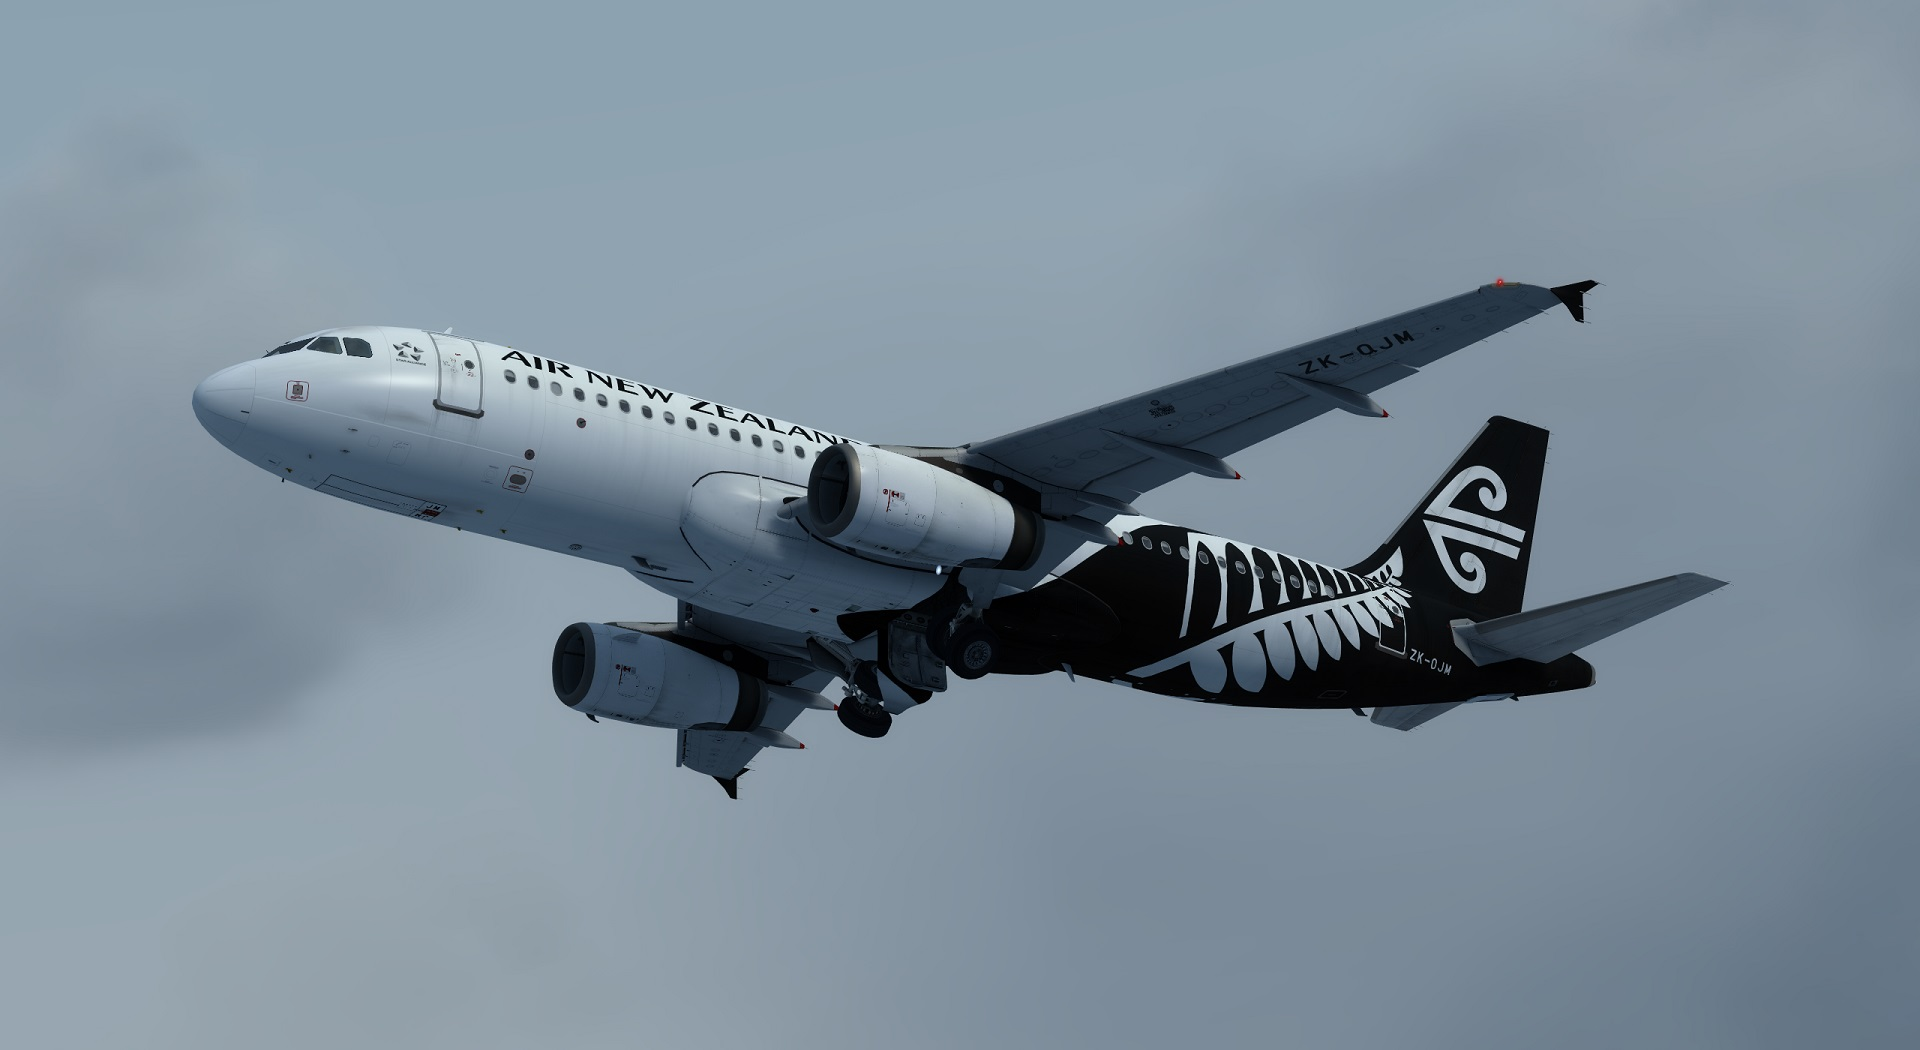 Airbus A320 IAE Air New Zealand ZK-OJM Fern Livery - Airbus